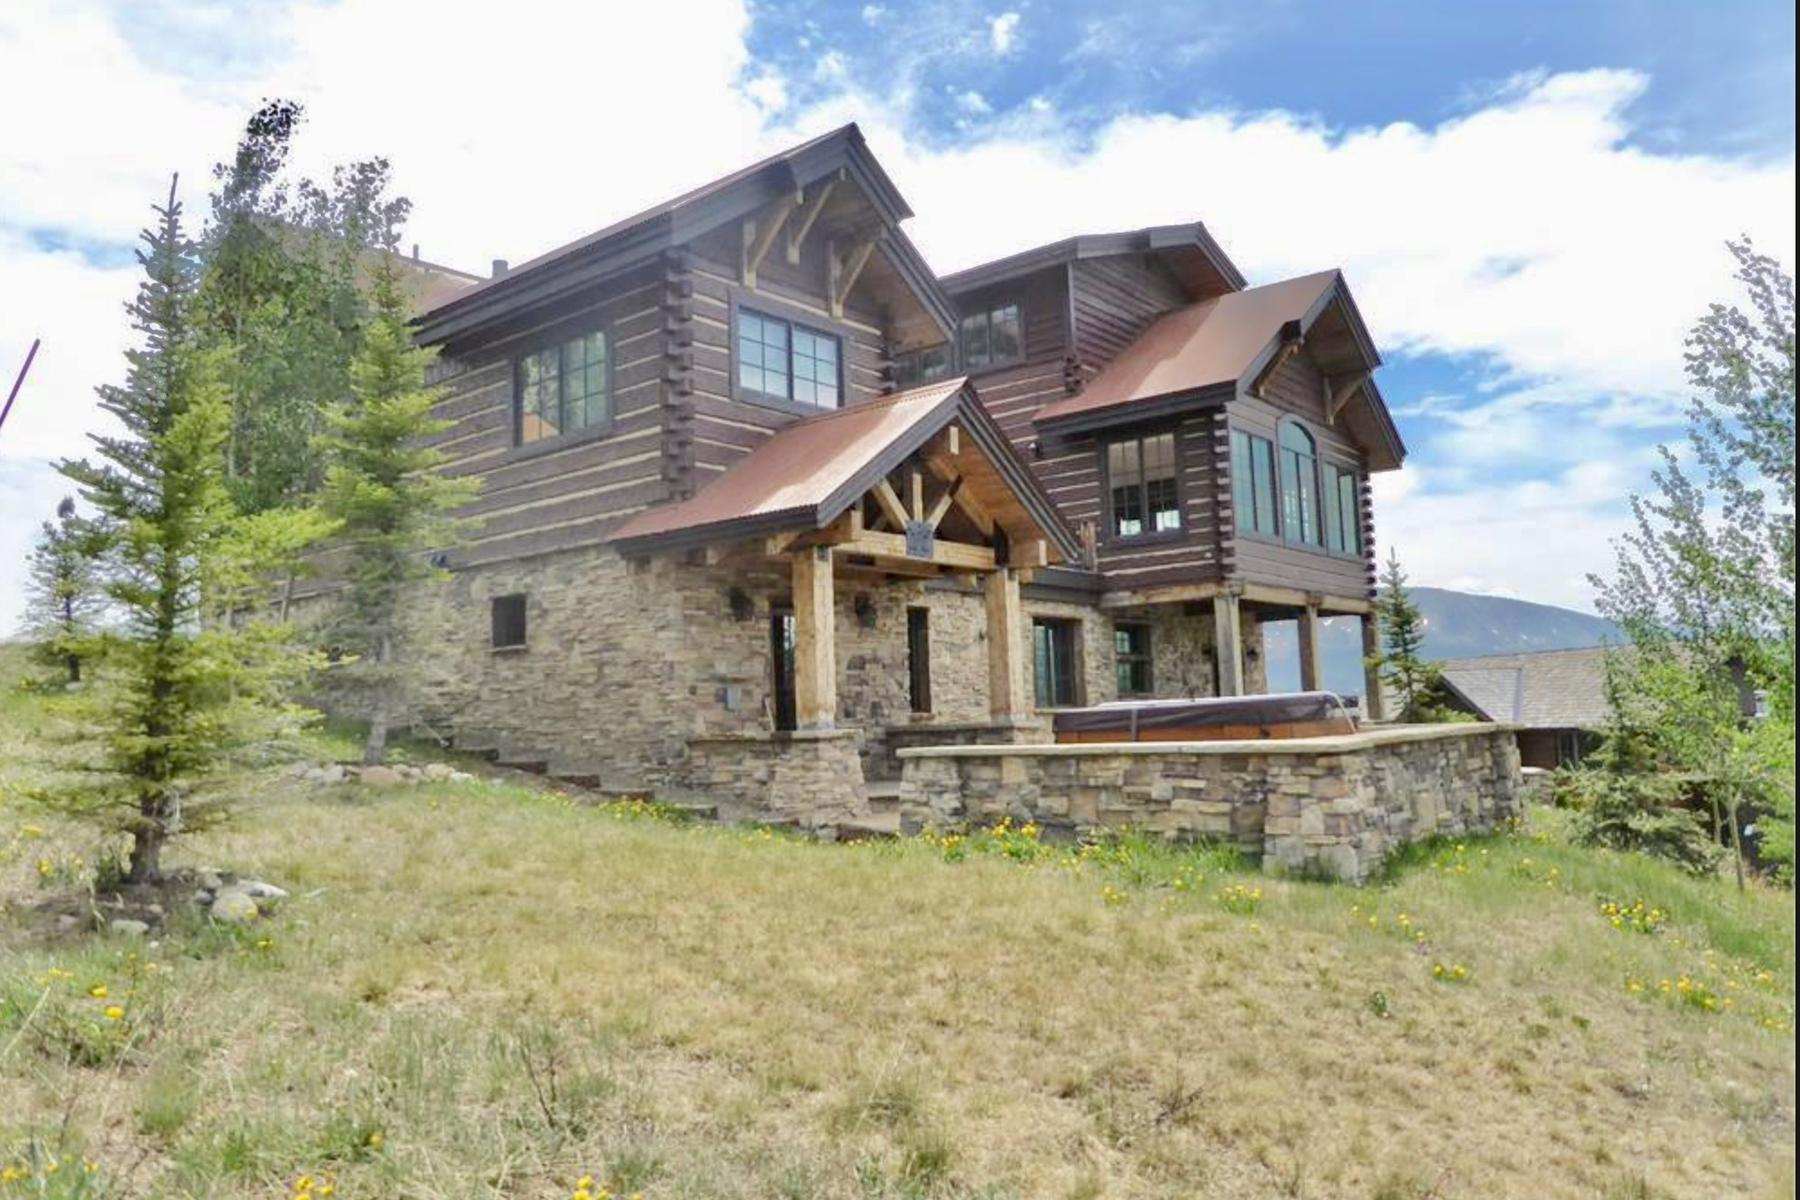 Single Family Homes for Sale at Custom Mountain Retreat with Breathtaking Views 59 Summit Road Mount Crested Butte, Colorado 81225 United States